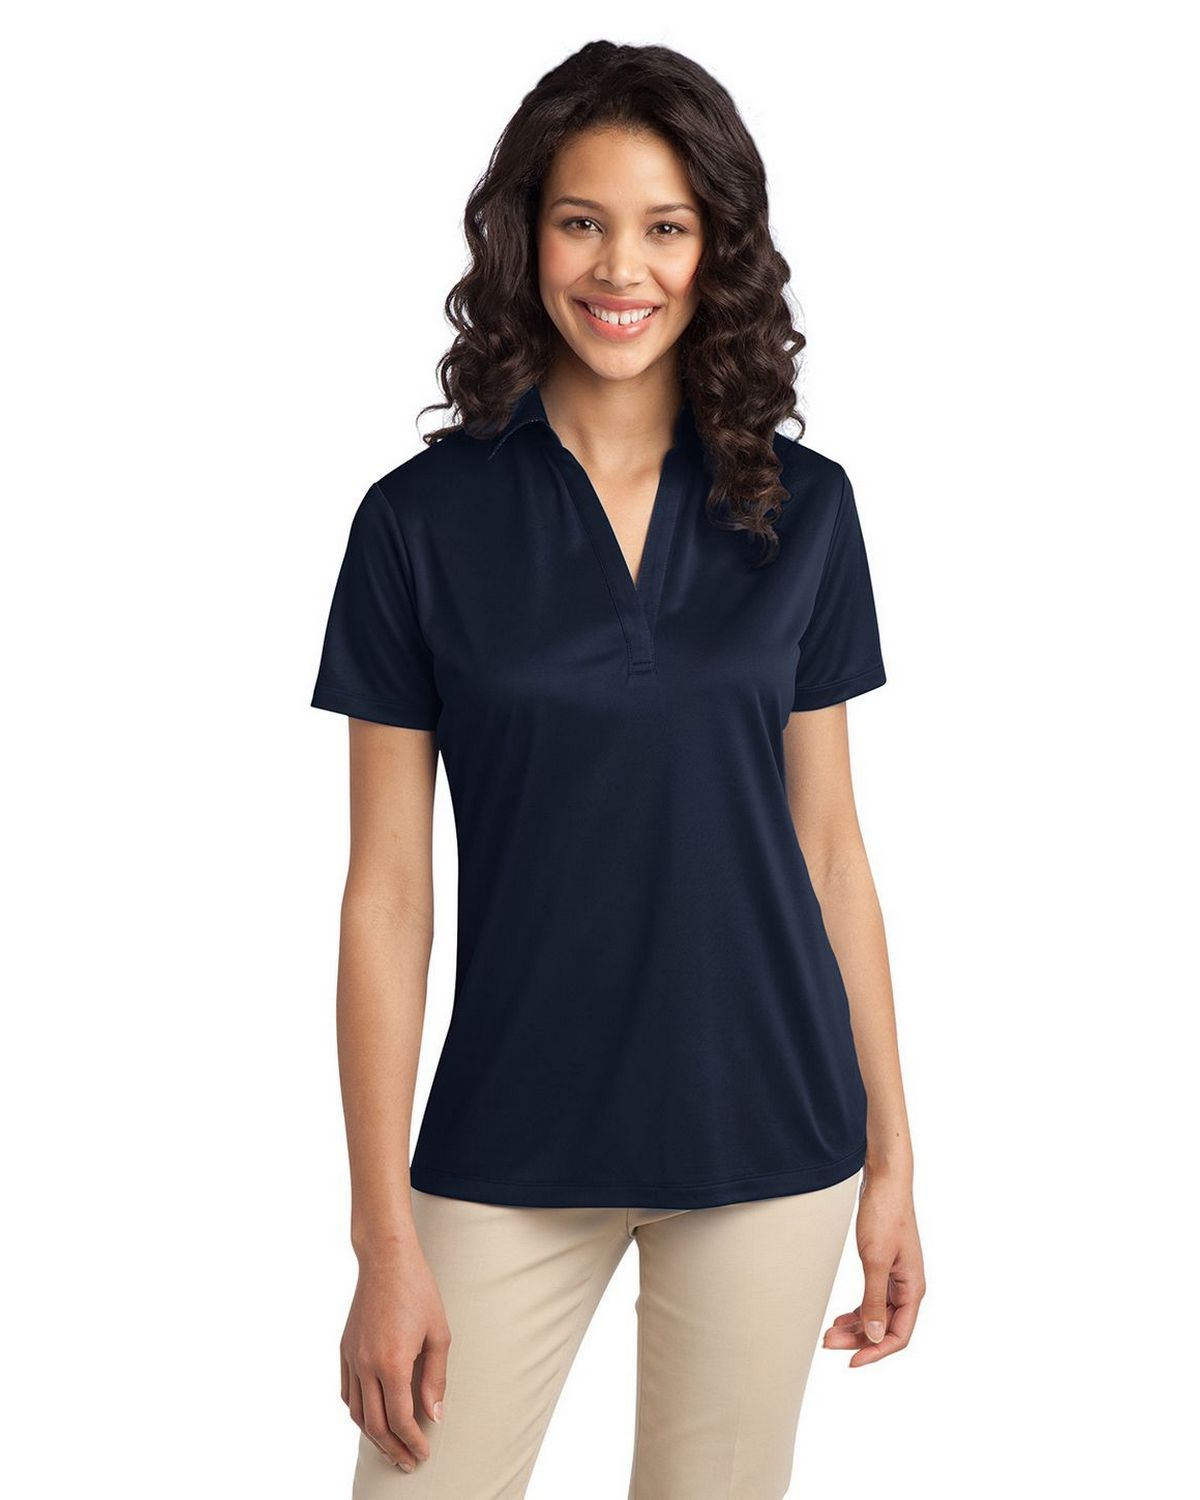 Port Authority L540 Women's Silk Touch Performance Polo - Navy - XS #silk